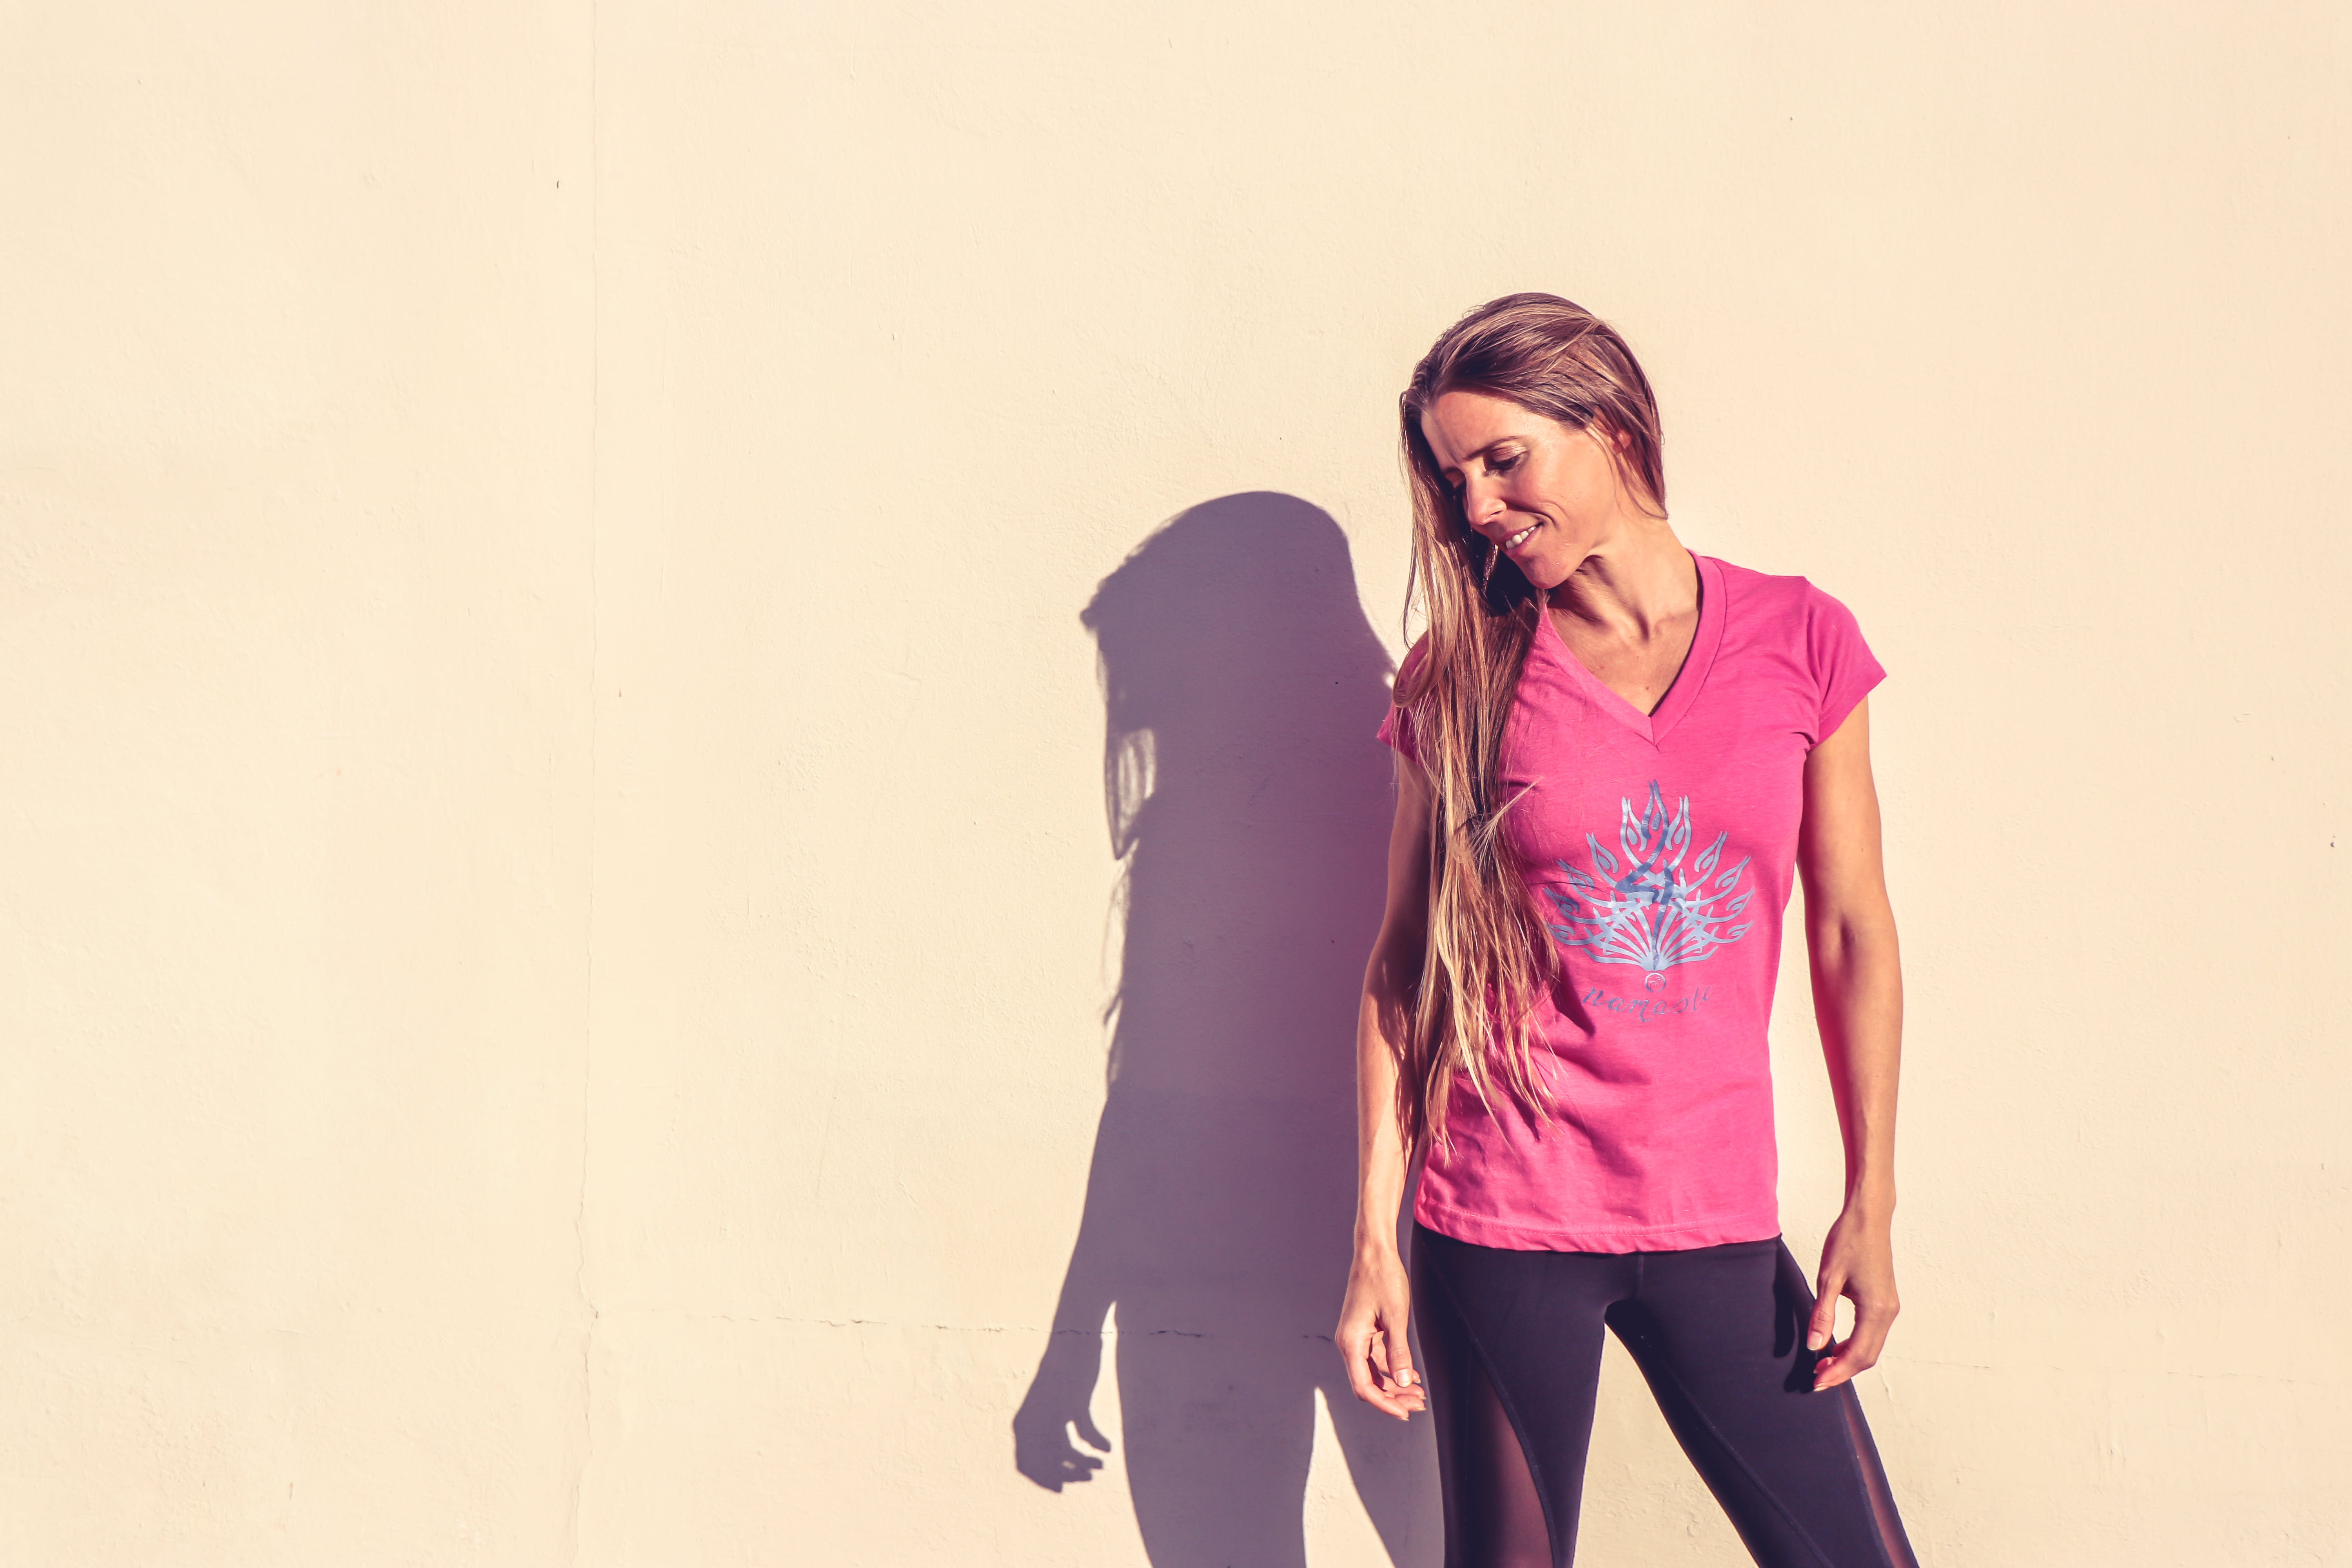 Woman in Pink V-neck Cap-sleeved Shirt Standing Near Wall